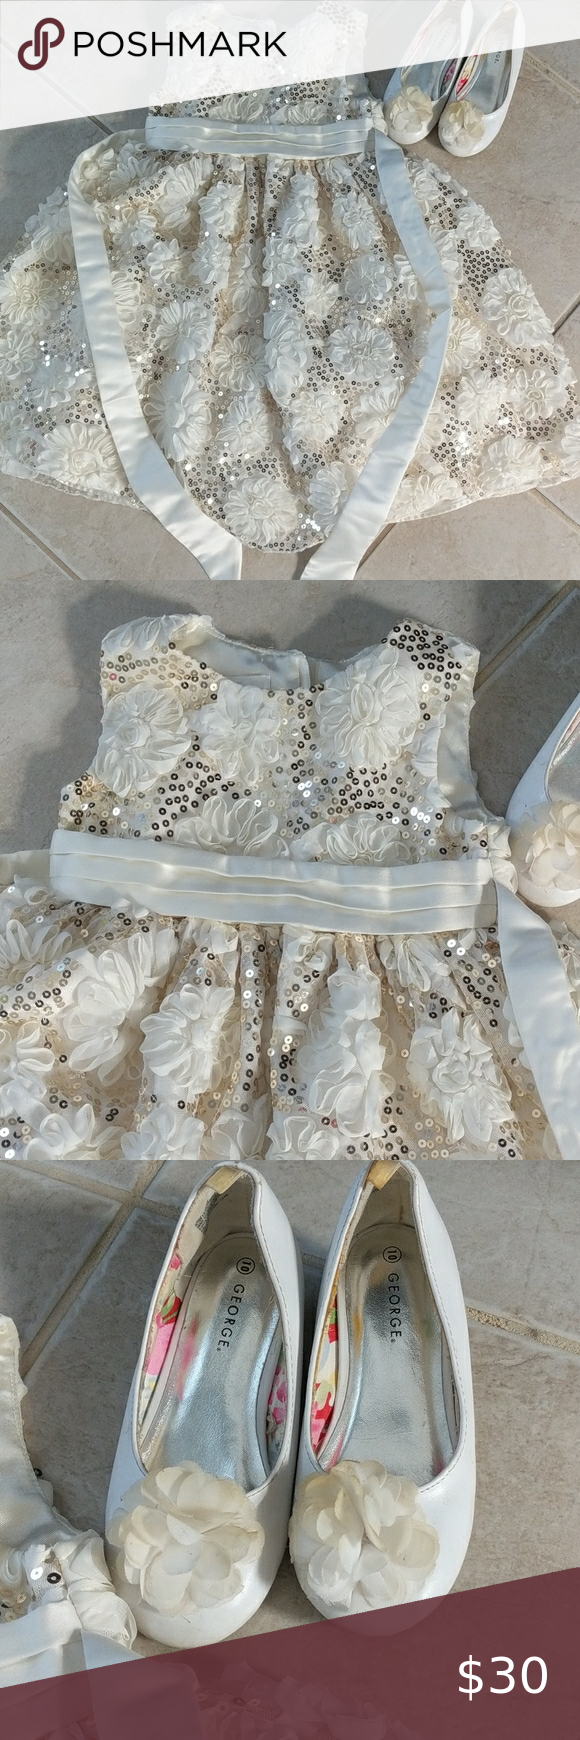 5t Cream Off White Holiday Dress Matching Shoes Off White Dresses White Holiday Dress American Princess [ 1740 x 580 Pixel ]